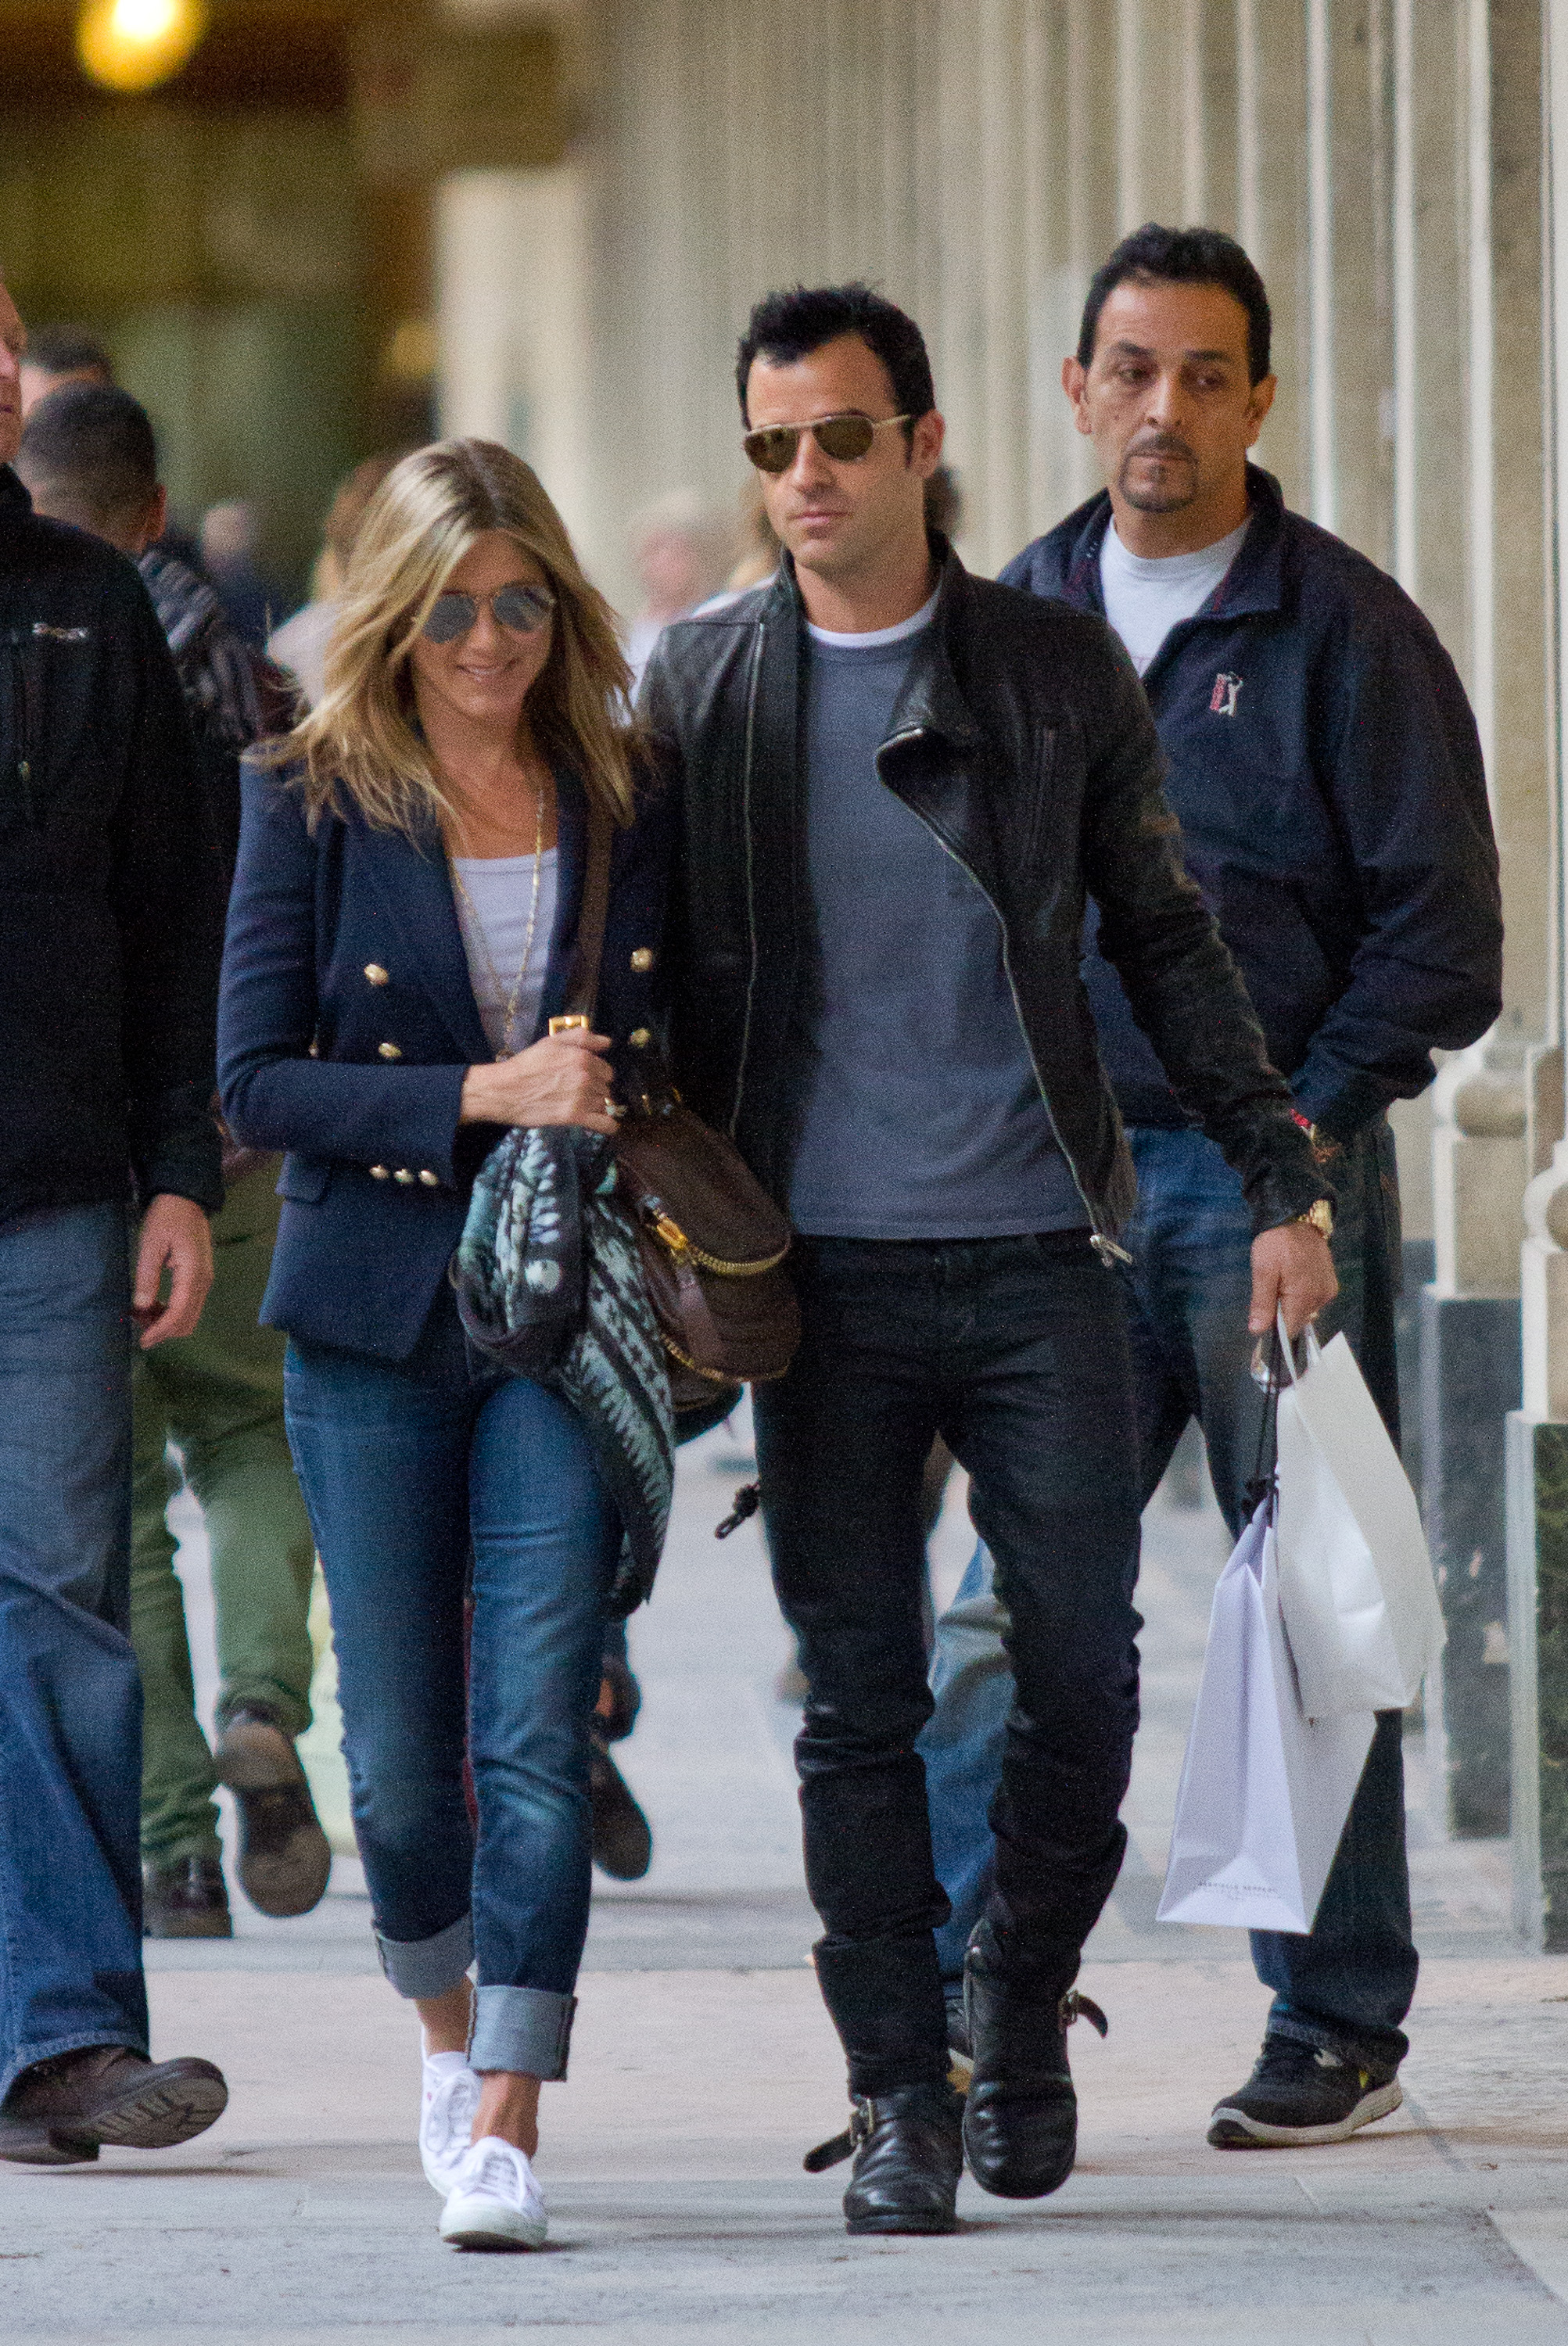 Jennifer Aniston And Justin Theroux Sighting In Paris - June 11, 2012